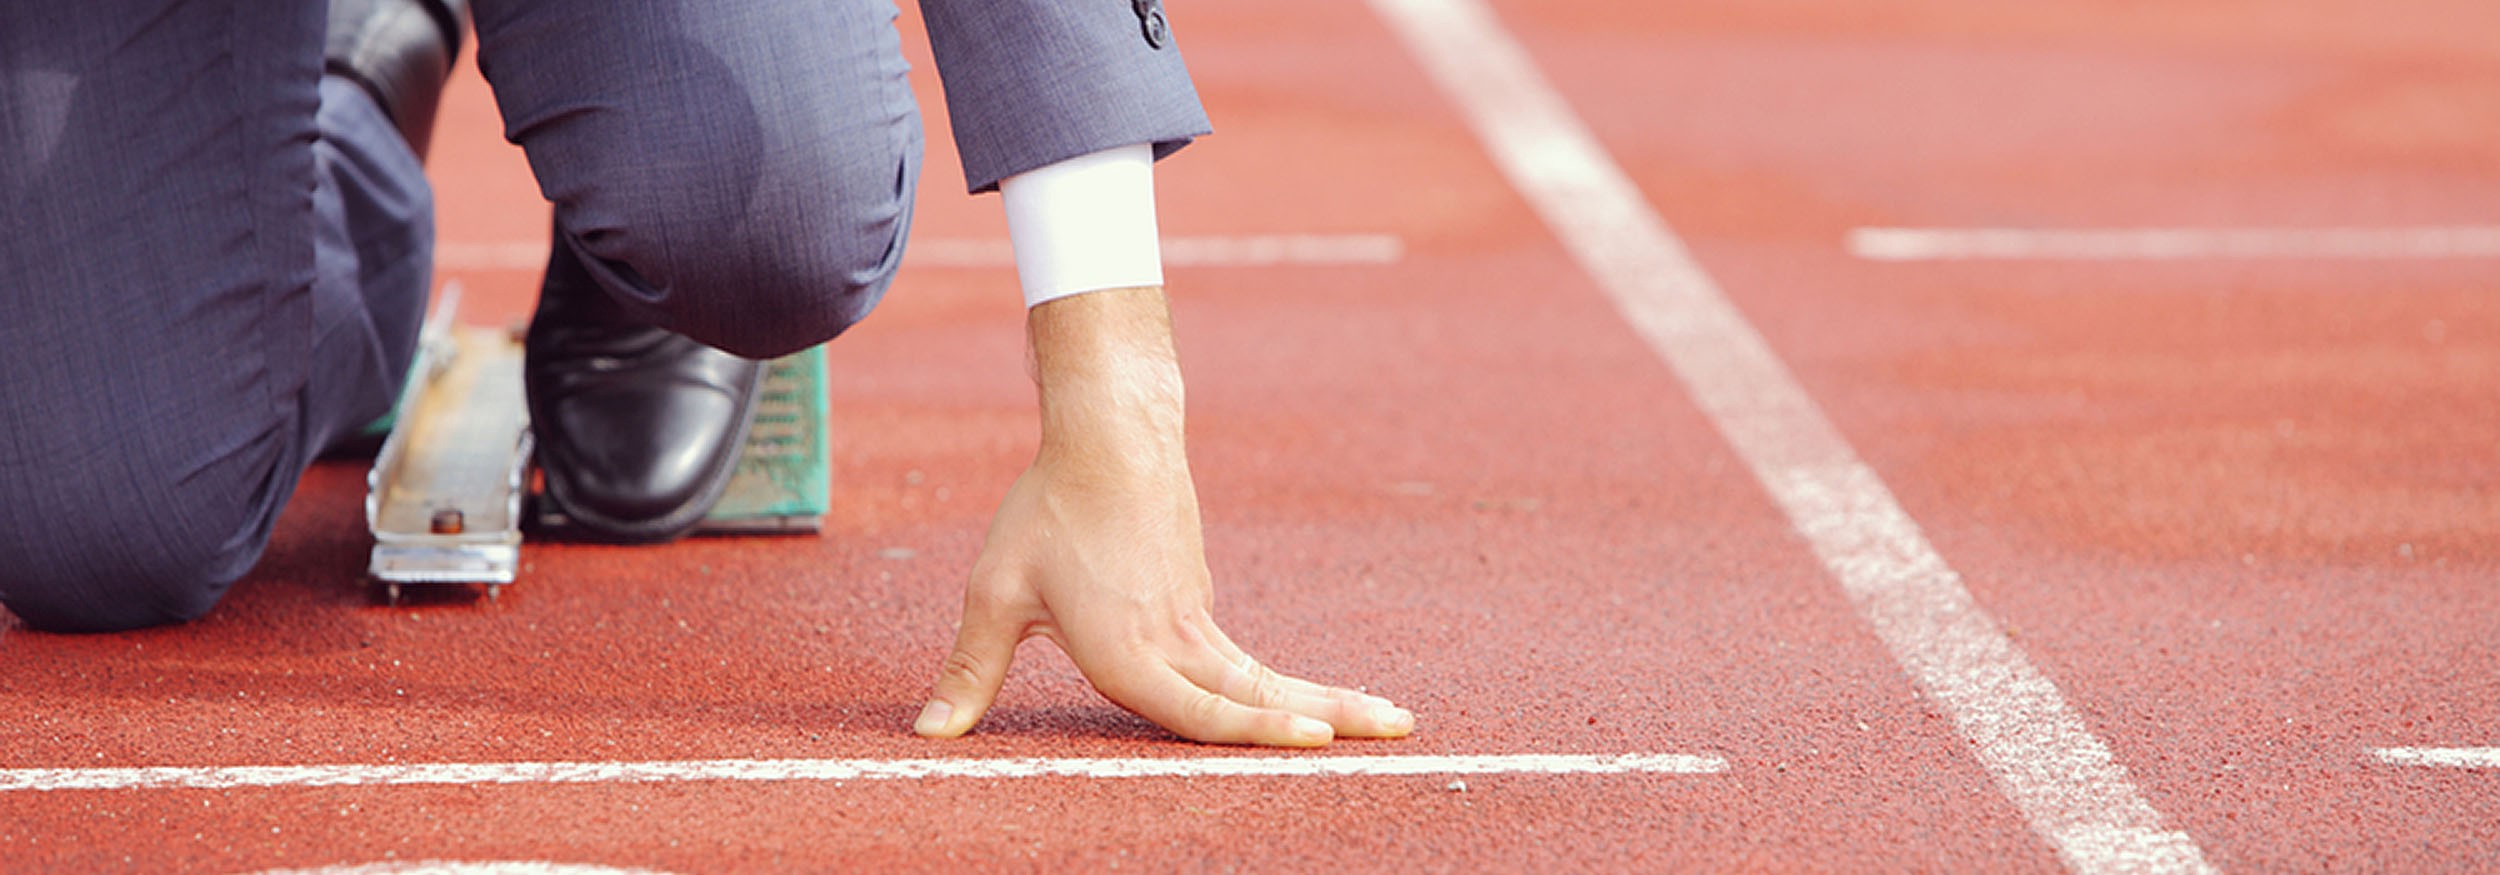 63b6dabf5e6 A man in a suit about to start a race. Admit that you couldn't have found a  better stock image for this post…